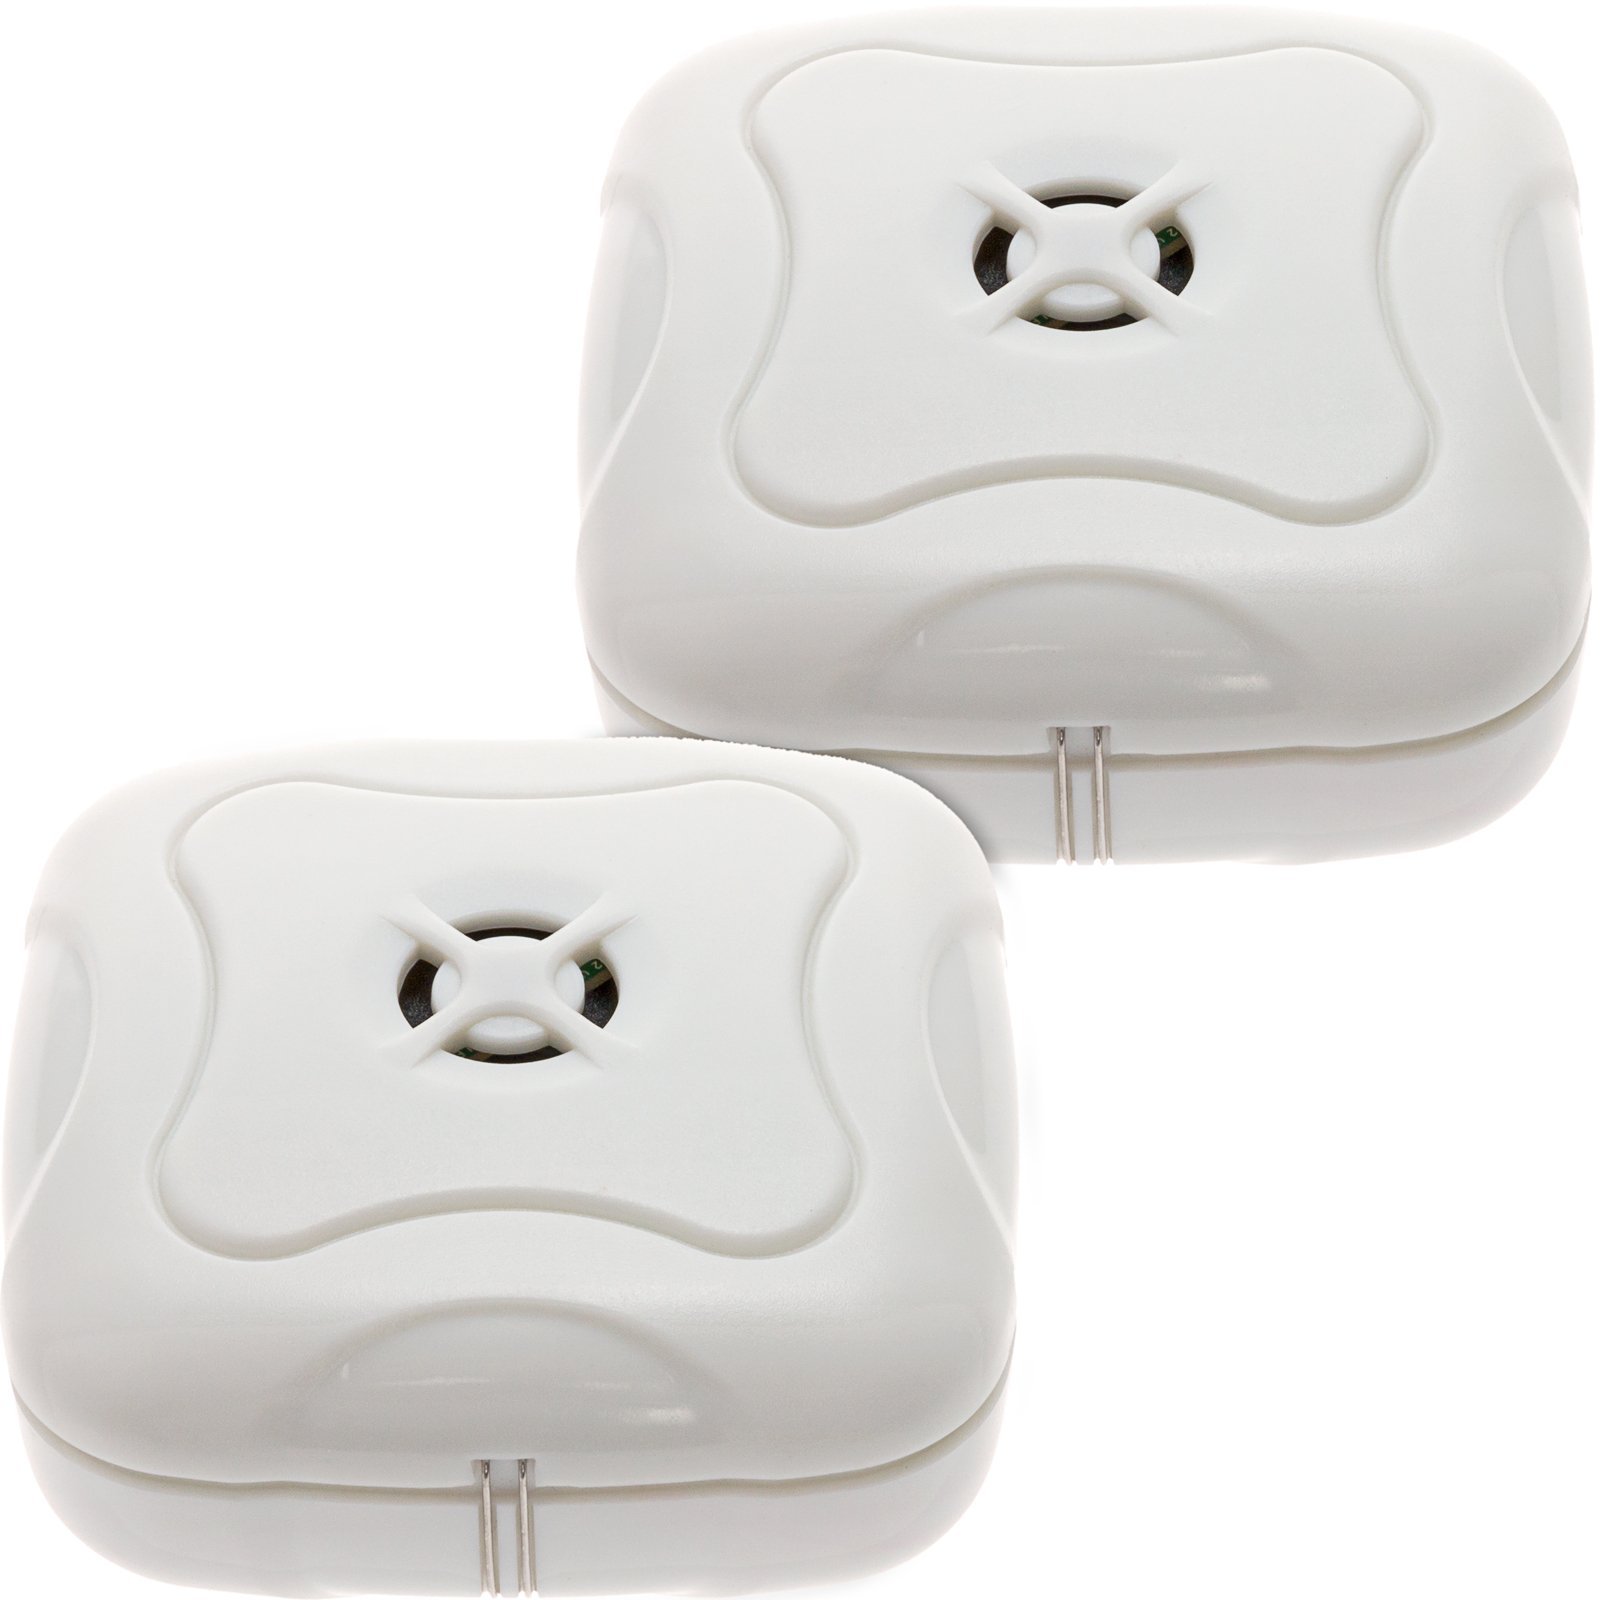 Mindful Design 2 Pack Water Leak Detector - 95 Db Flood Detection Alarm Sensor For Bathrooms, Basements, And Kitchens By (White, 2 Pack) by Mindful Design